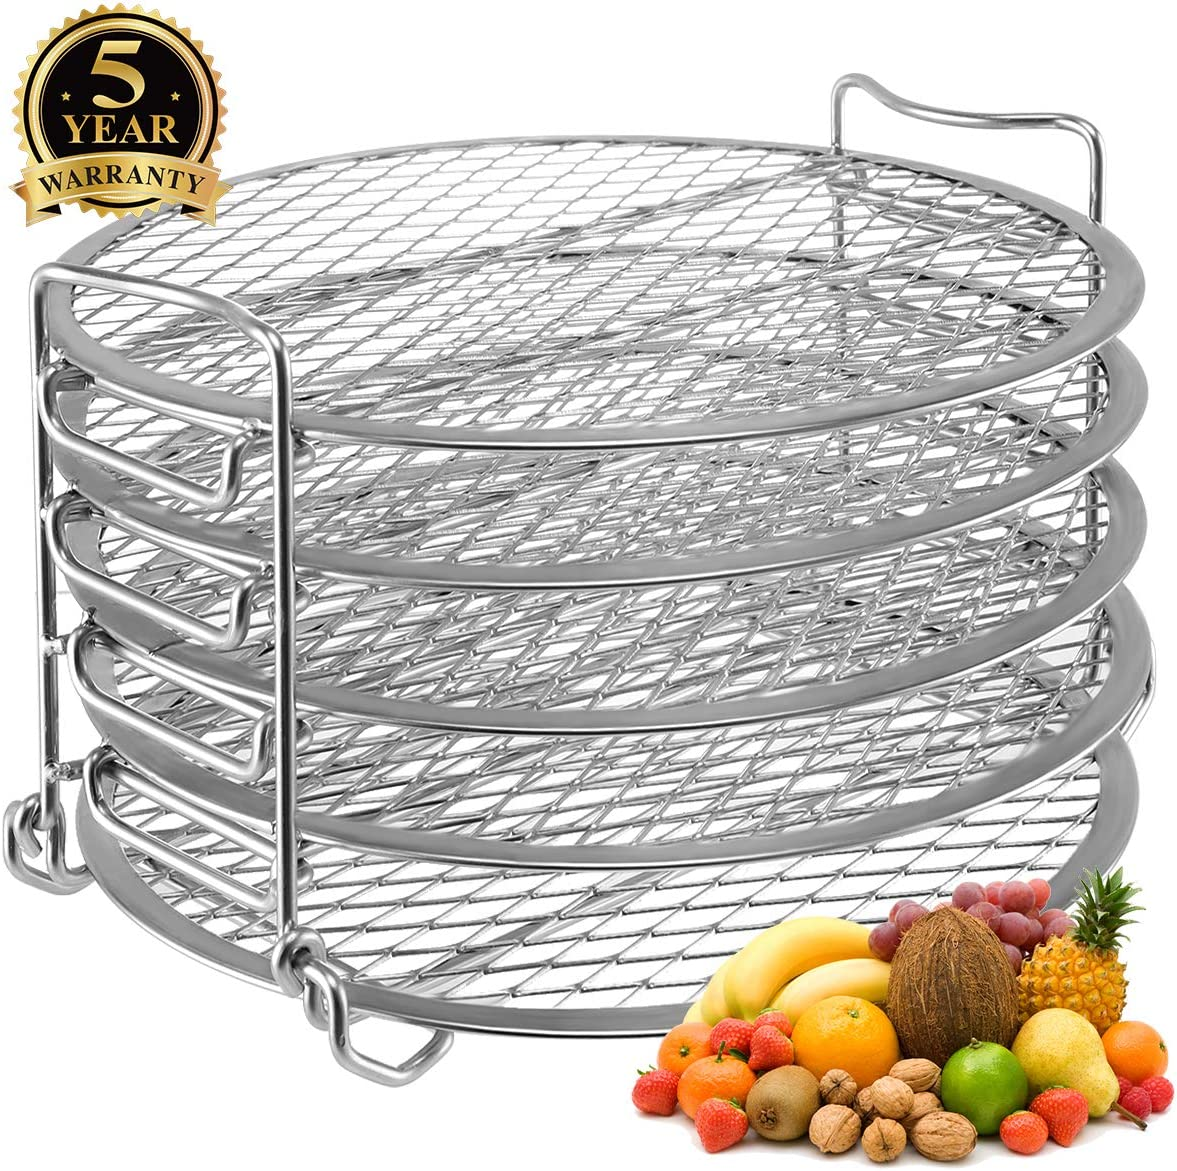 Dehydrator Stand for Ninja Foodi Accessories, Dehydrator Rack with Five Stackable Layers Food Grade 304 Stainless Steel Compatible with Ninja Foodi Pressure Cooker 6.5 qt & 8 qt